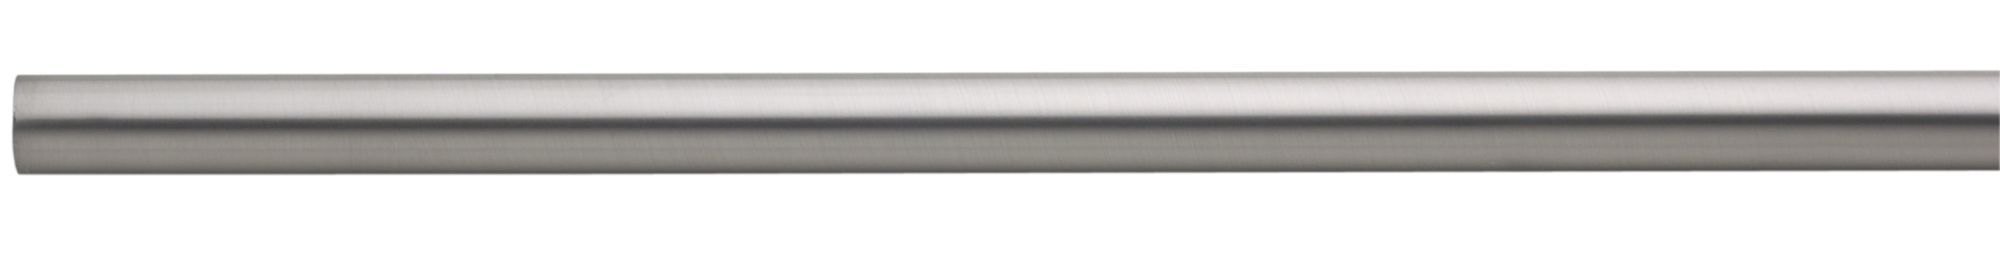 Colorail Nickel Effect Steel Round Tube (l)0.91m